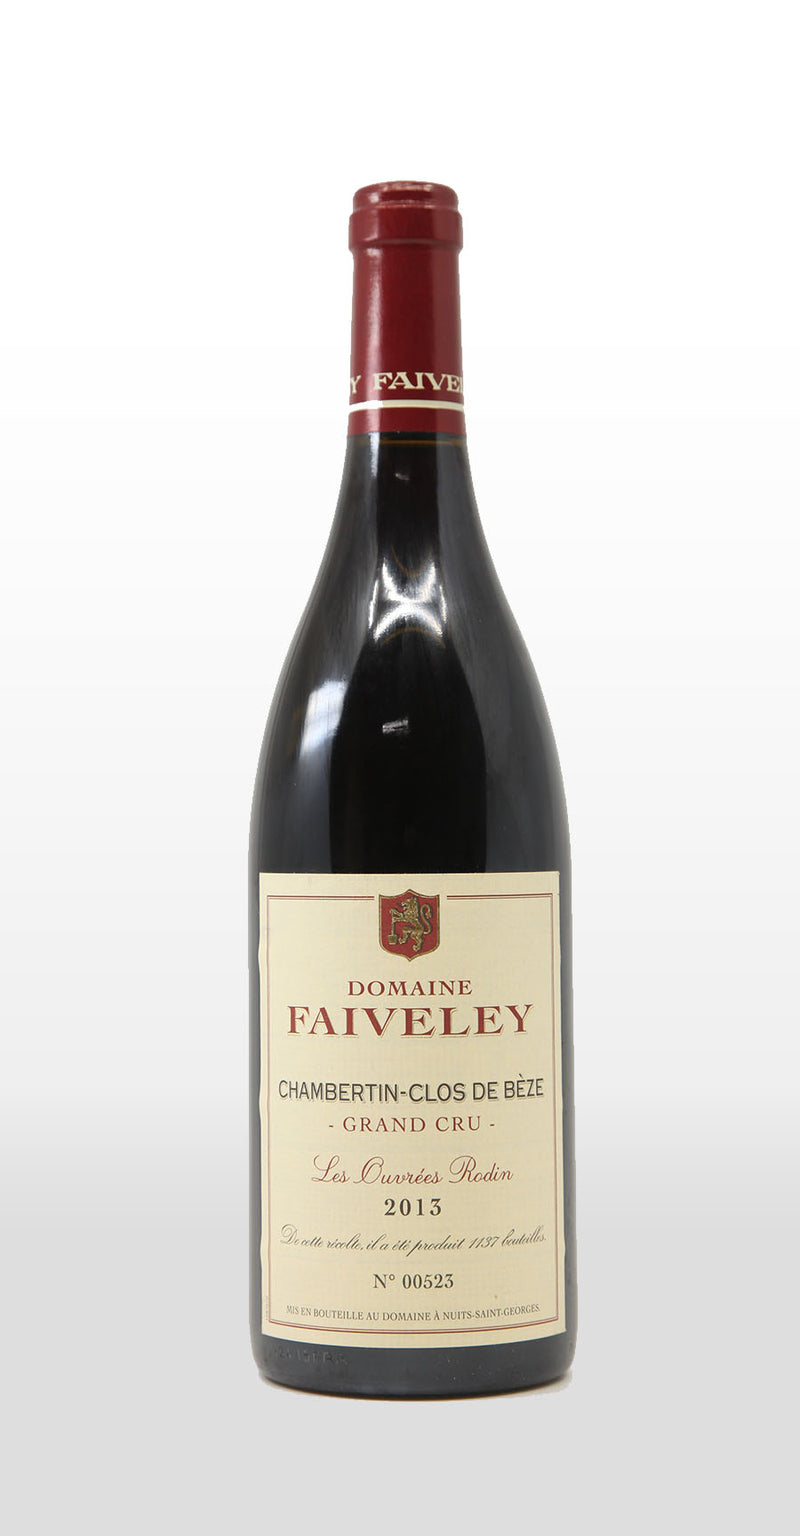 FAIVELEY CHAMBERTIN-CLOS DE BEZE GRAND CRU LES OUVREES RODIN 2013 750ML